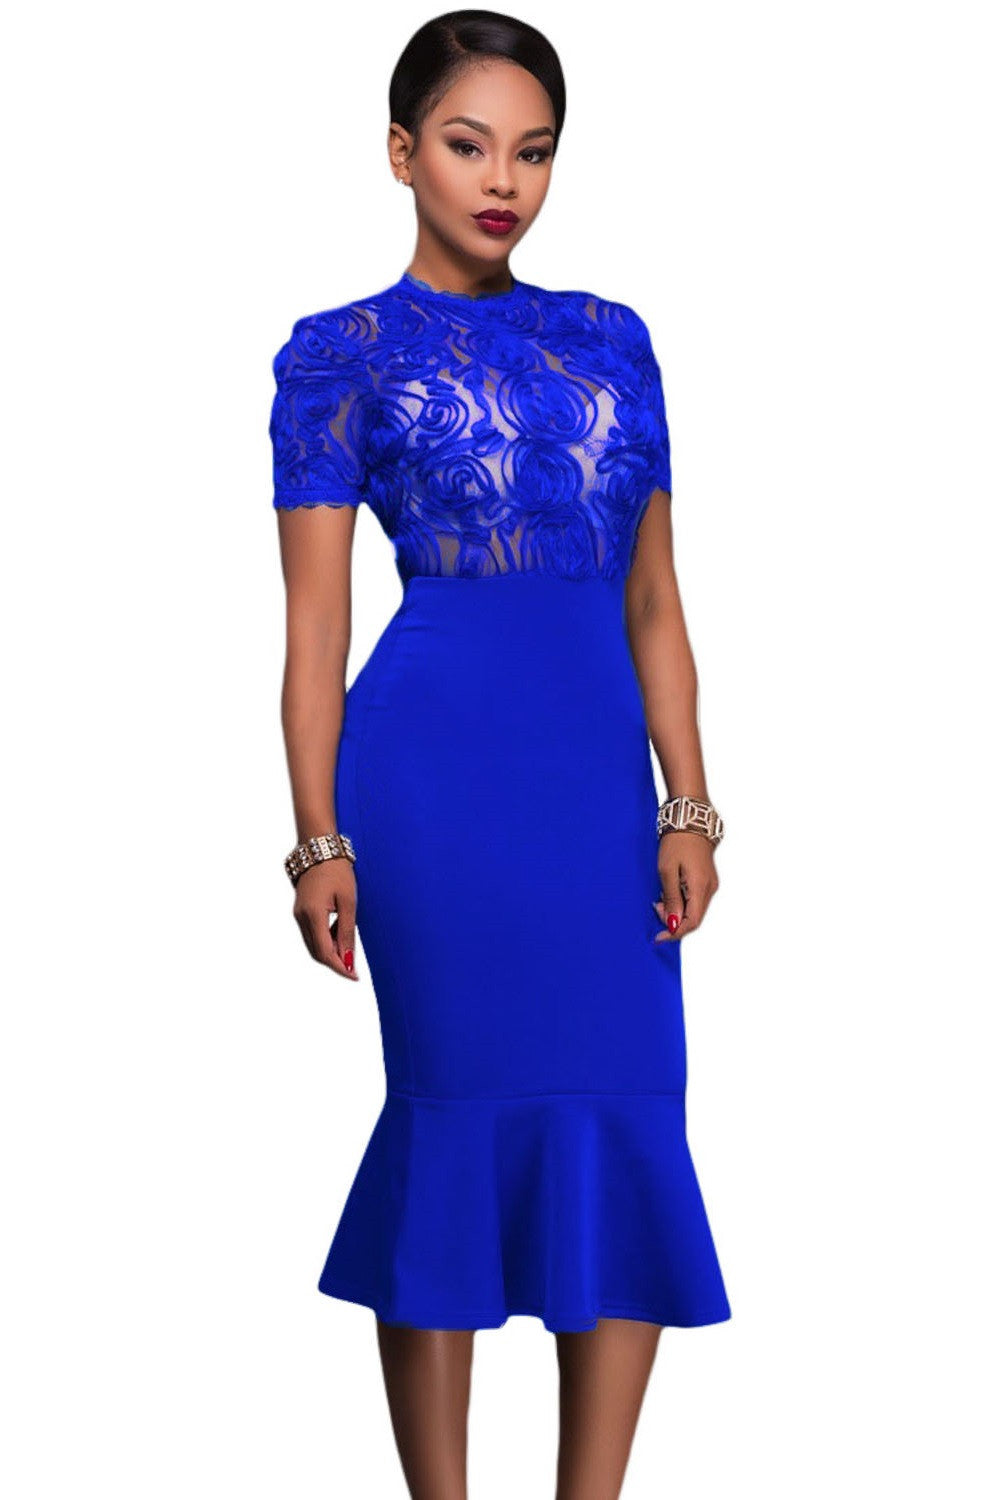 Her Royal Blue Sheer Lace Top Bodycon Midi Party Dress